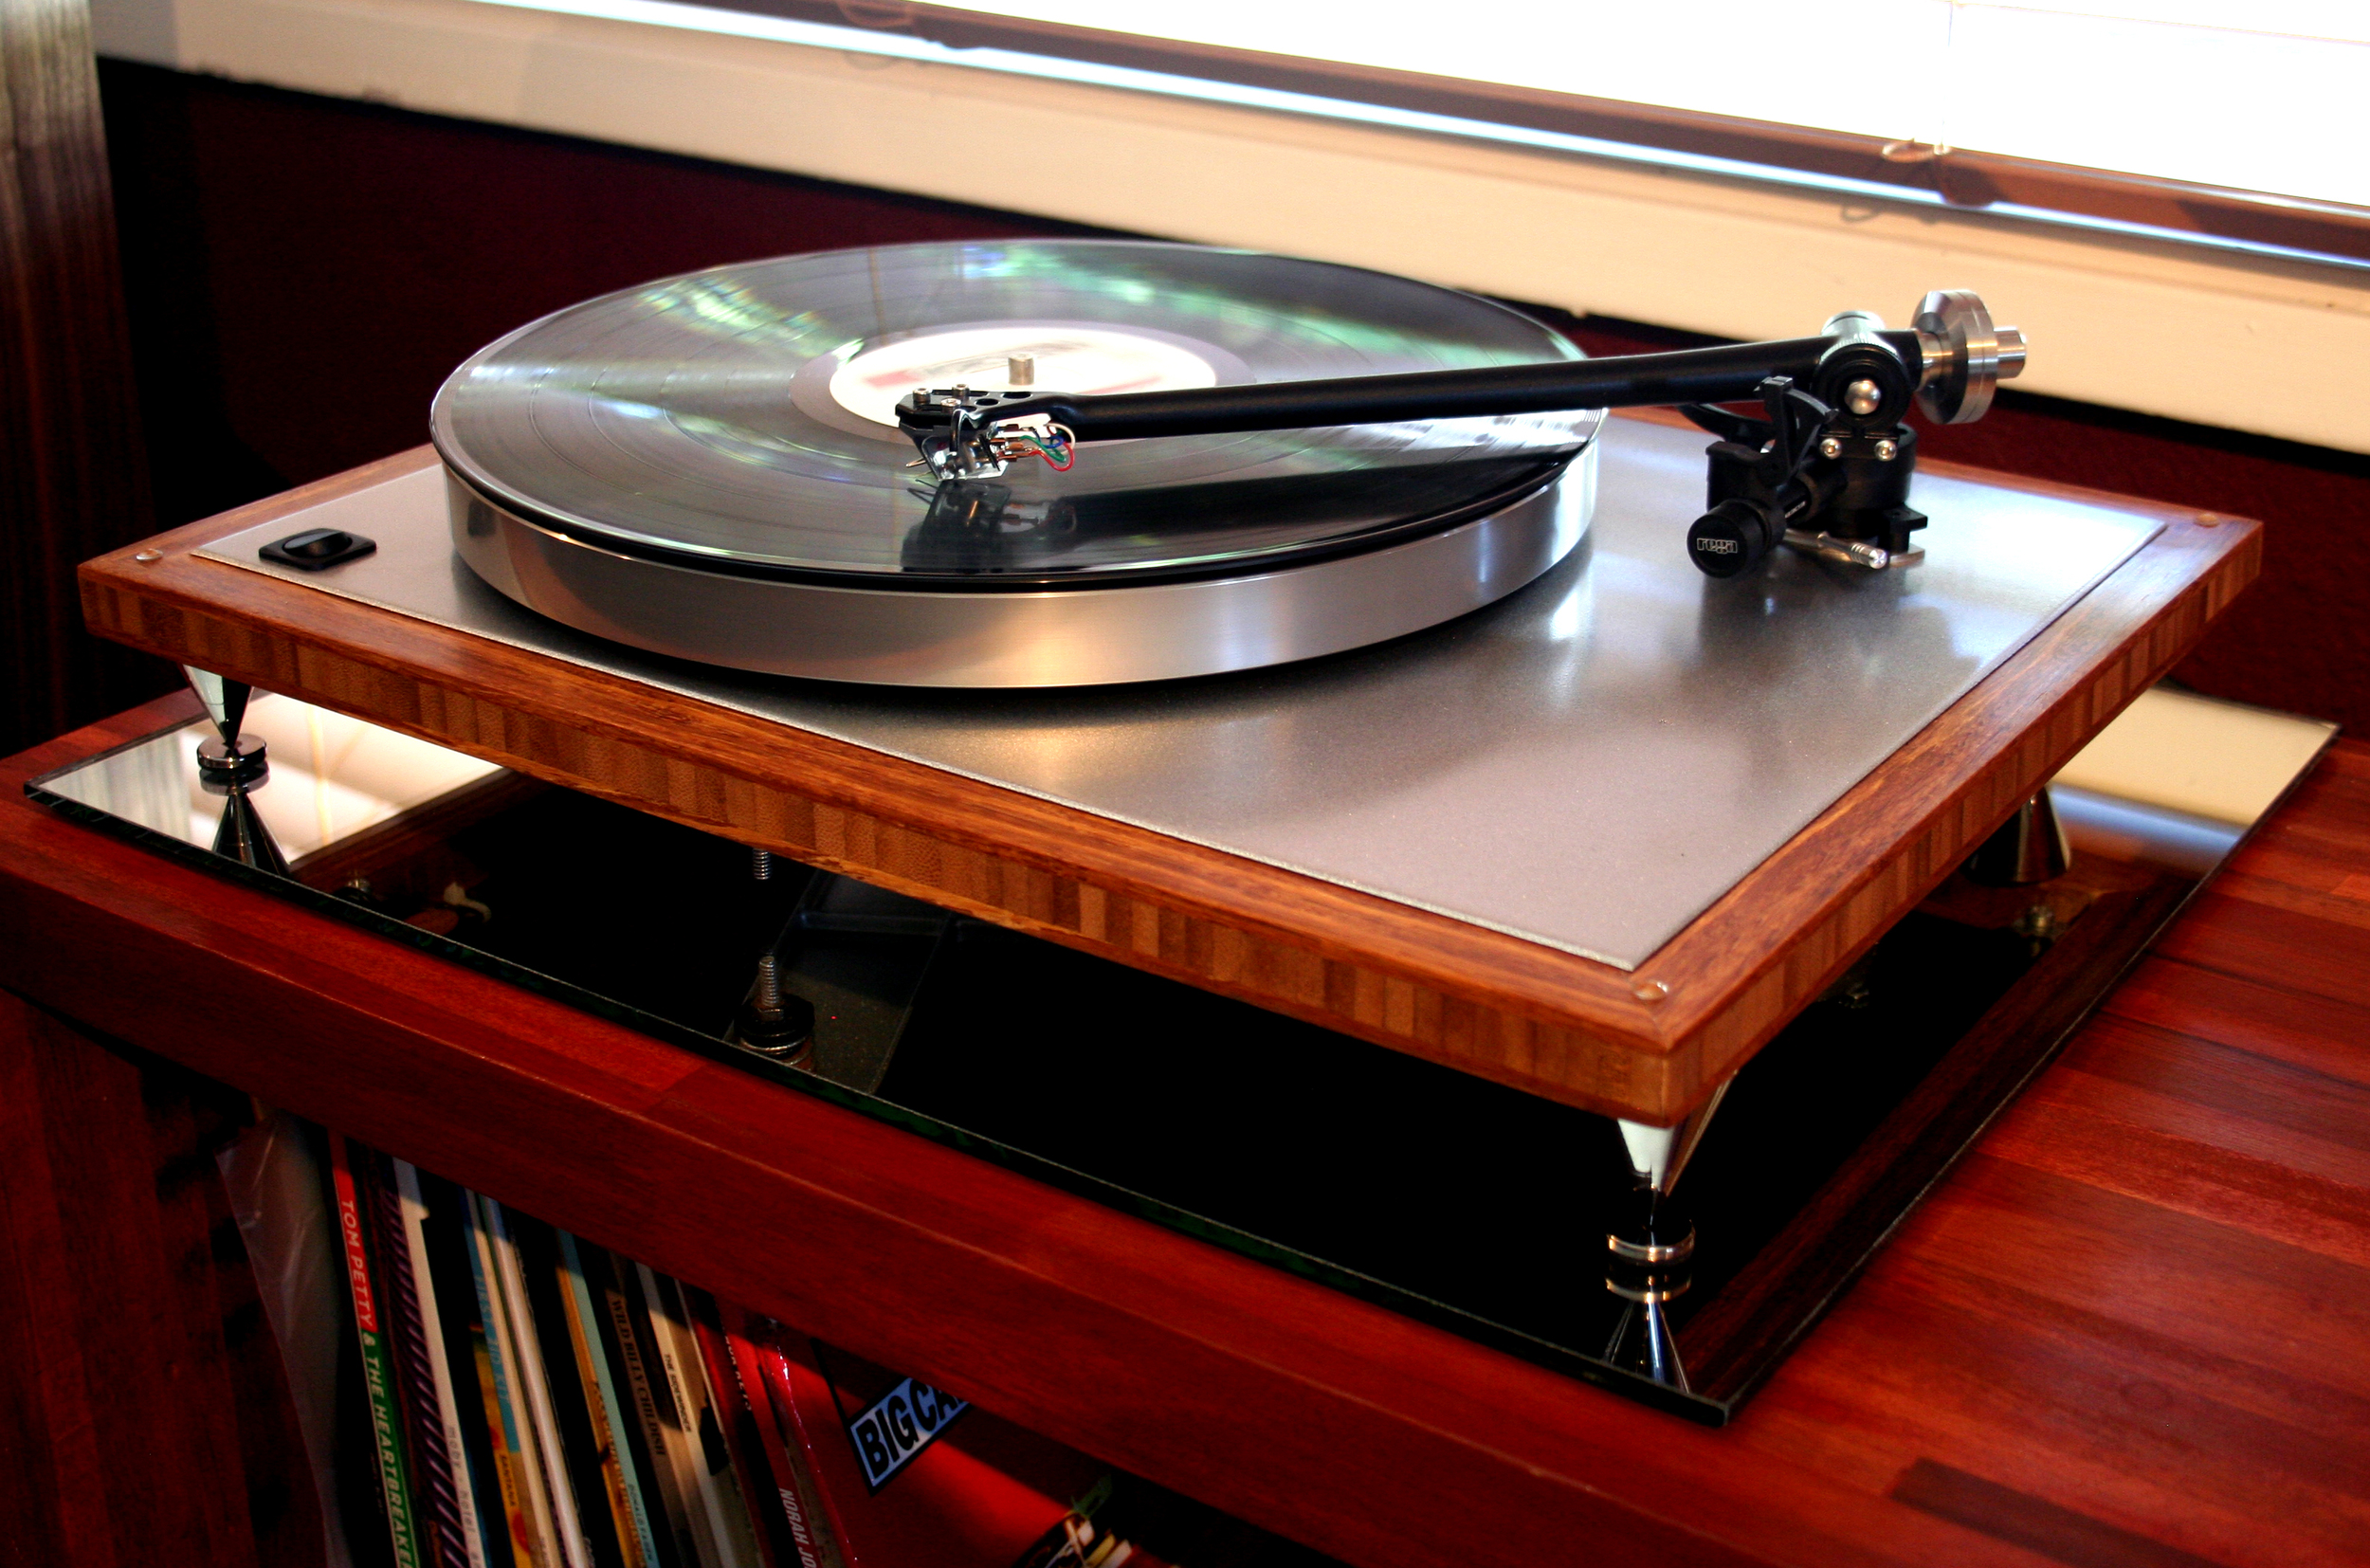 The Naked Bamboo   Acoustic Research T-bar, platter, sub-platter, sparkle silver top plate, Rega 303 tonearm, Hurst 300 motor, real bamboo base, rocker on/off switch, 2.5 inch metal spikes, custom dust-cover. $1299 w/out cartridge.